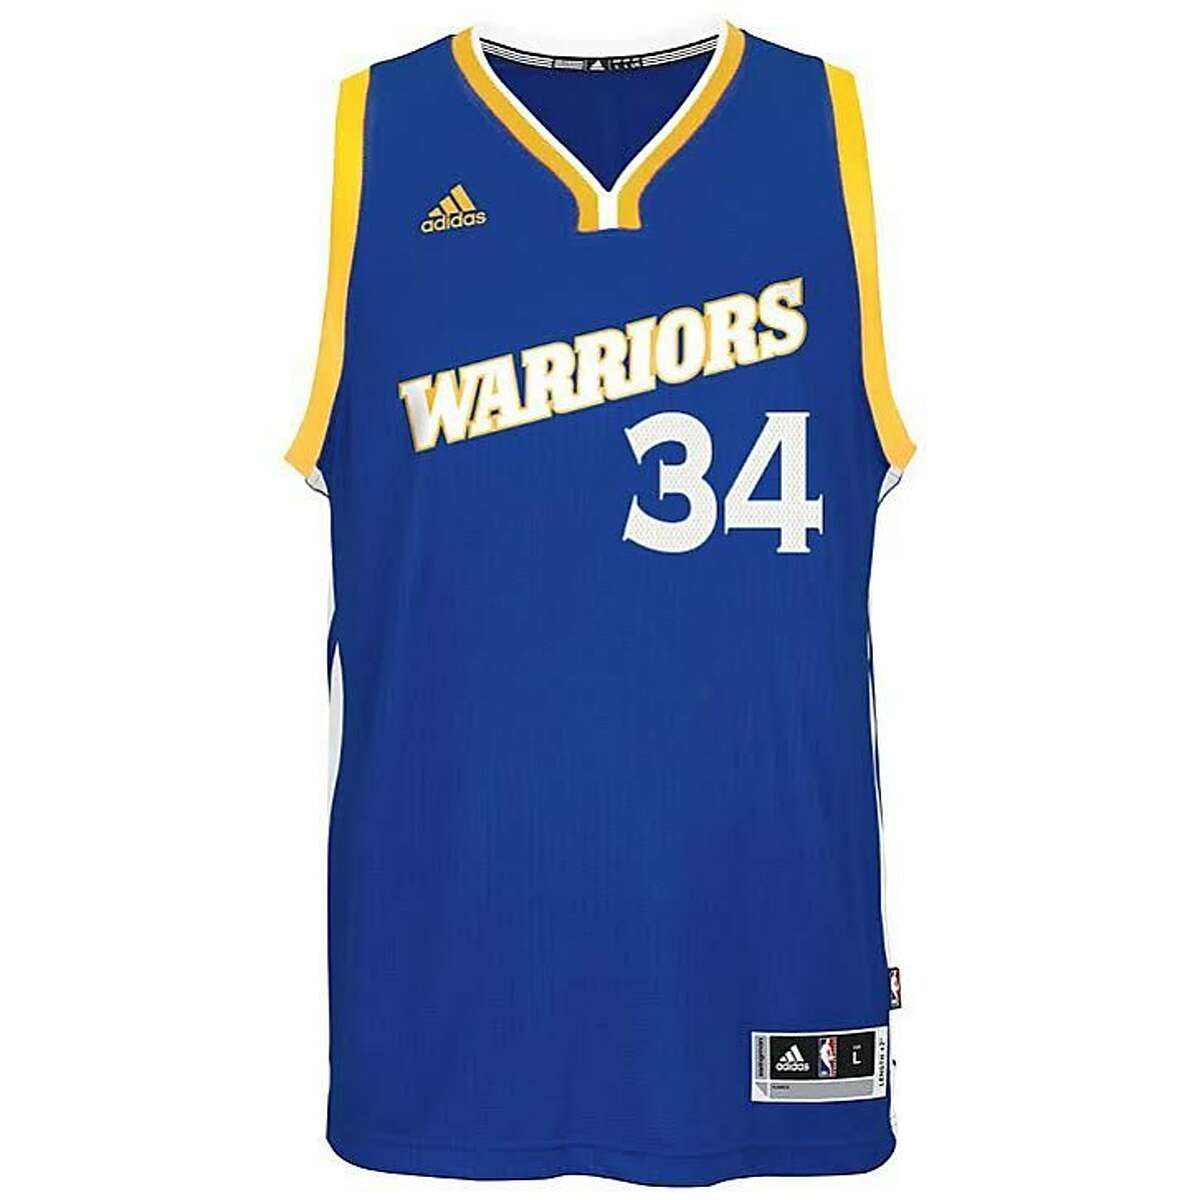 The Warriors will wear Crossover alternate uniforms for select Sunday games this season as a nod to the �Run TMC� era.